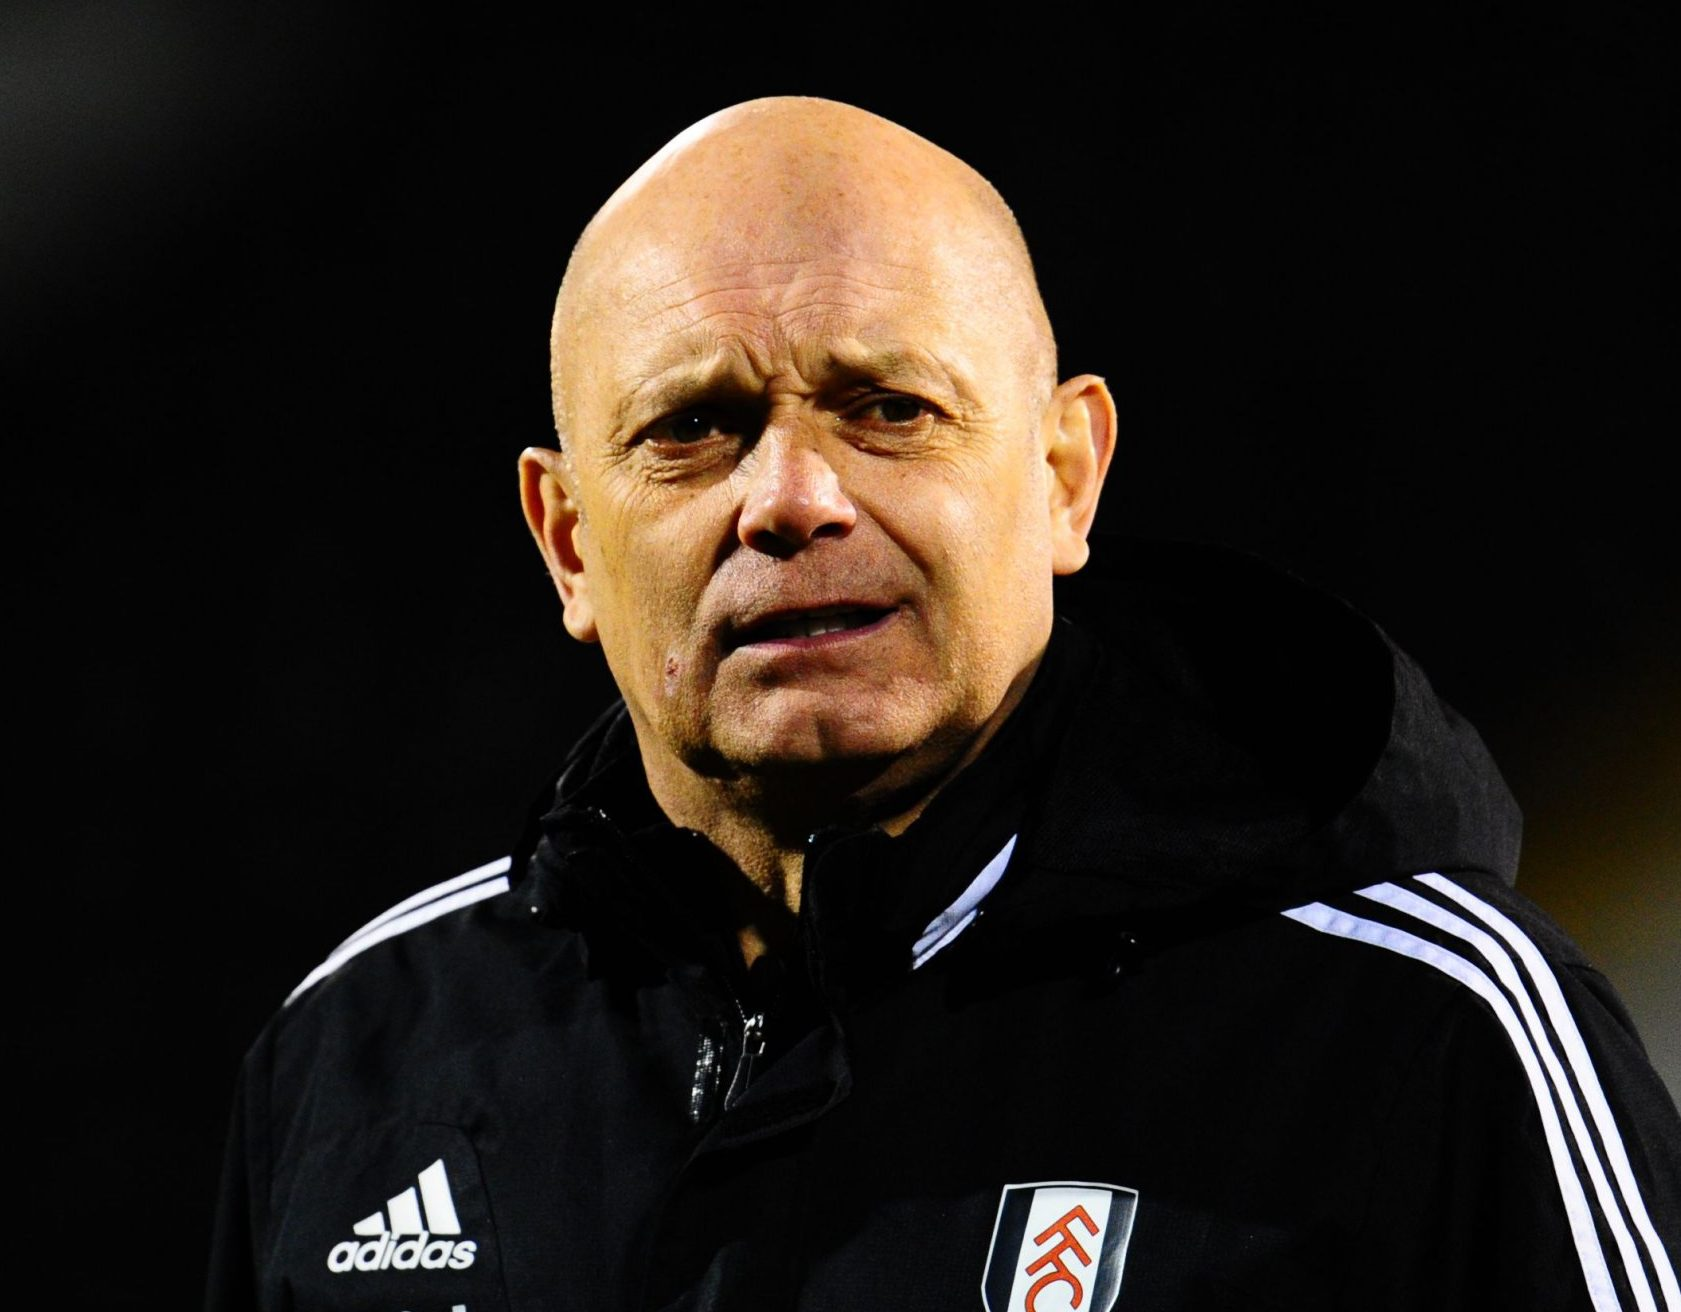 Former England, Chelsea and Manchester United midfielder Ray Wilkins dies aged 61